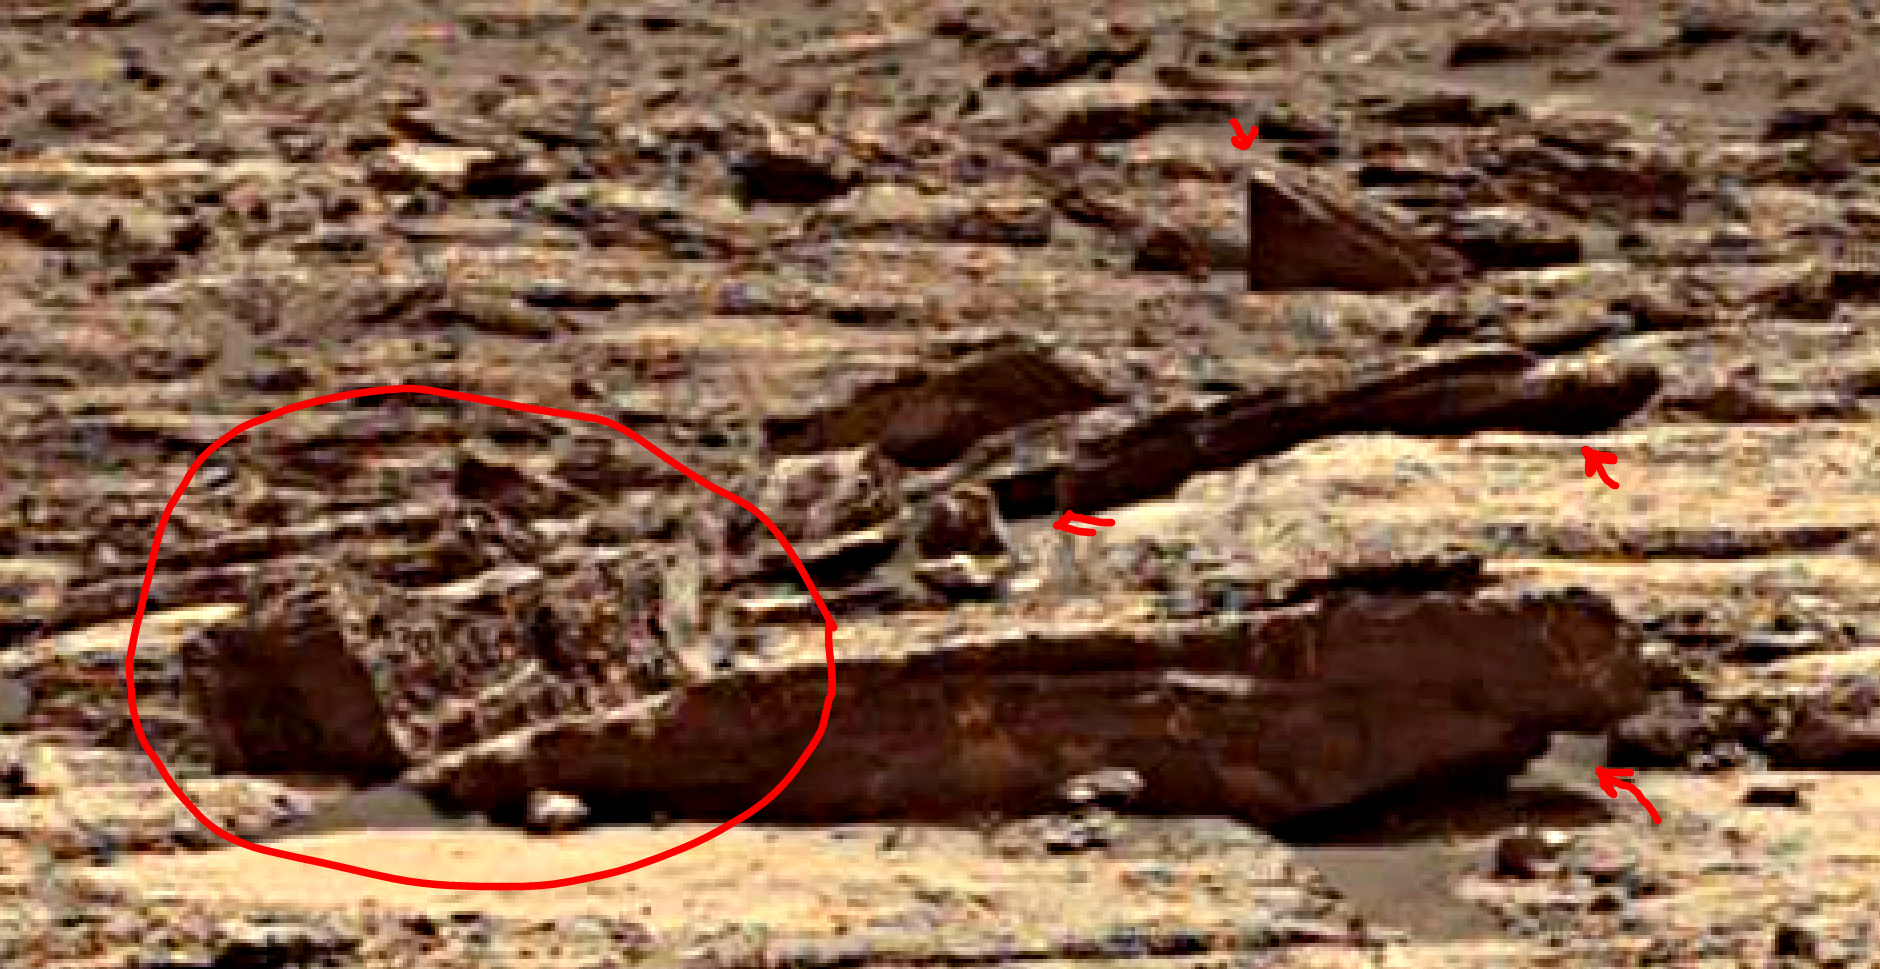 mars-sol-1489-anomaly-artifacts-3-was-life-on-mars